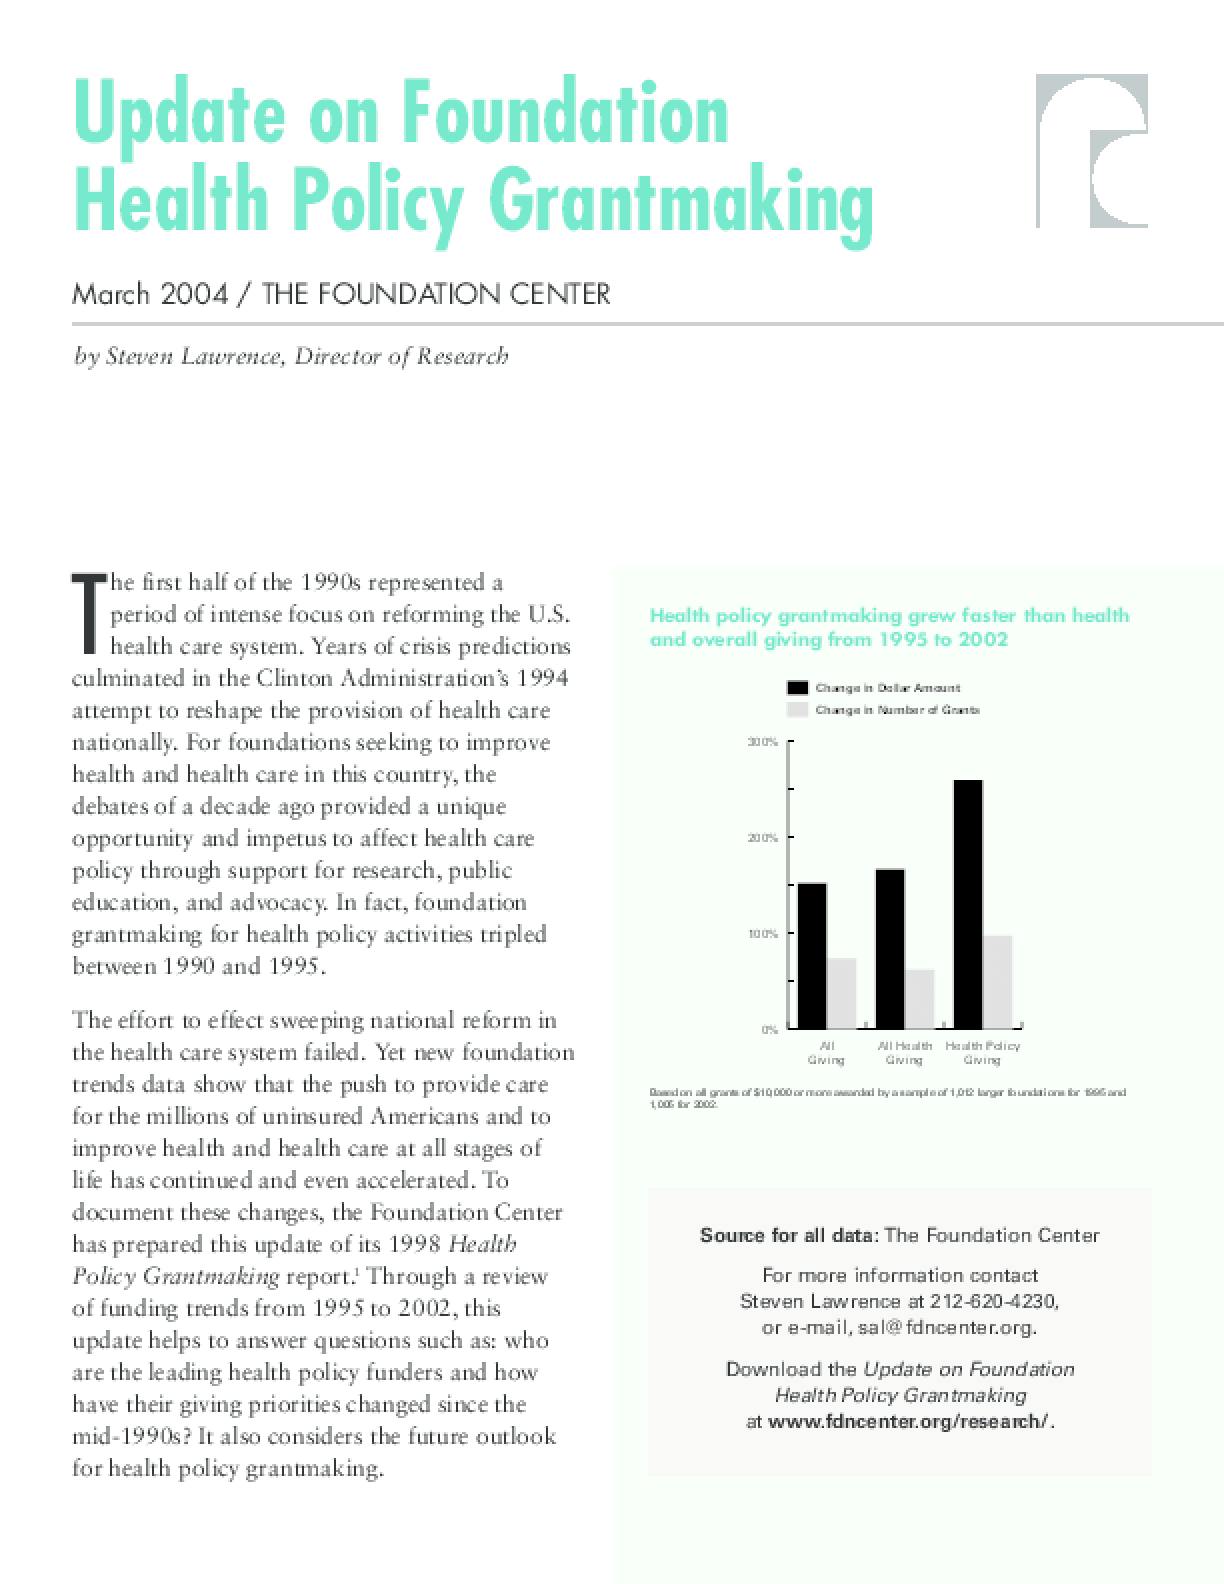 Update on Foundation Health Policy Grantmaking